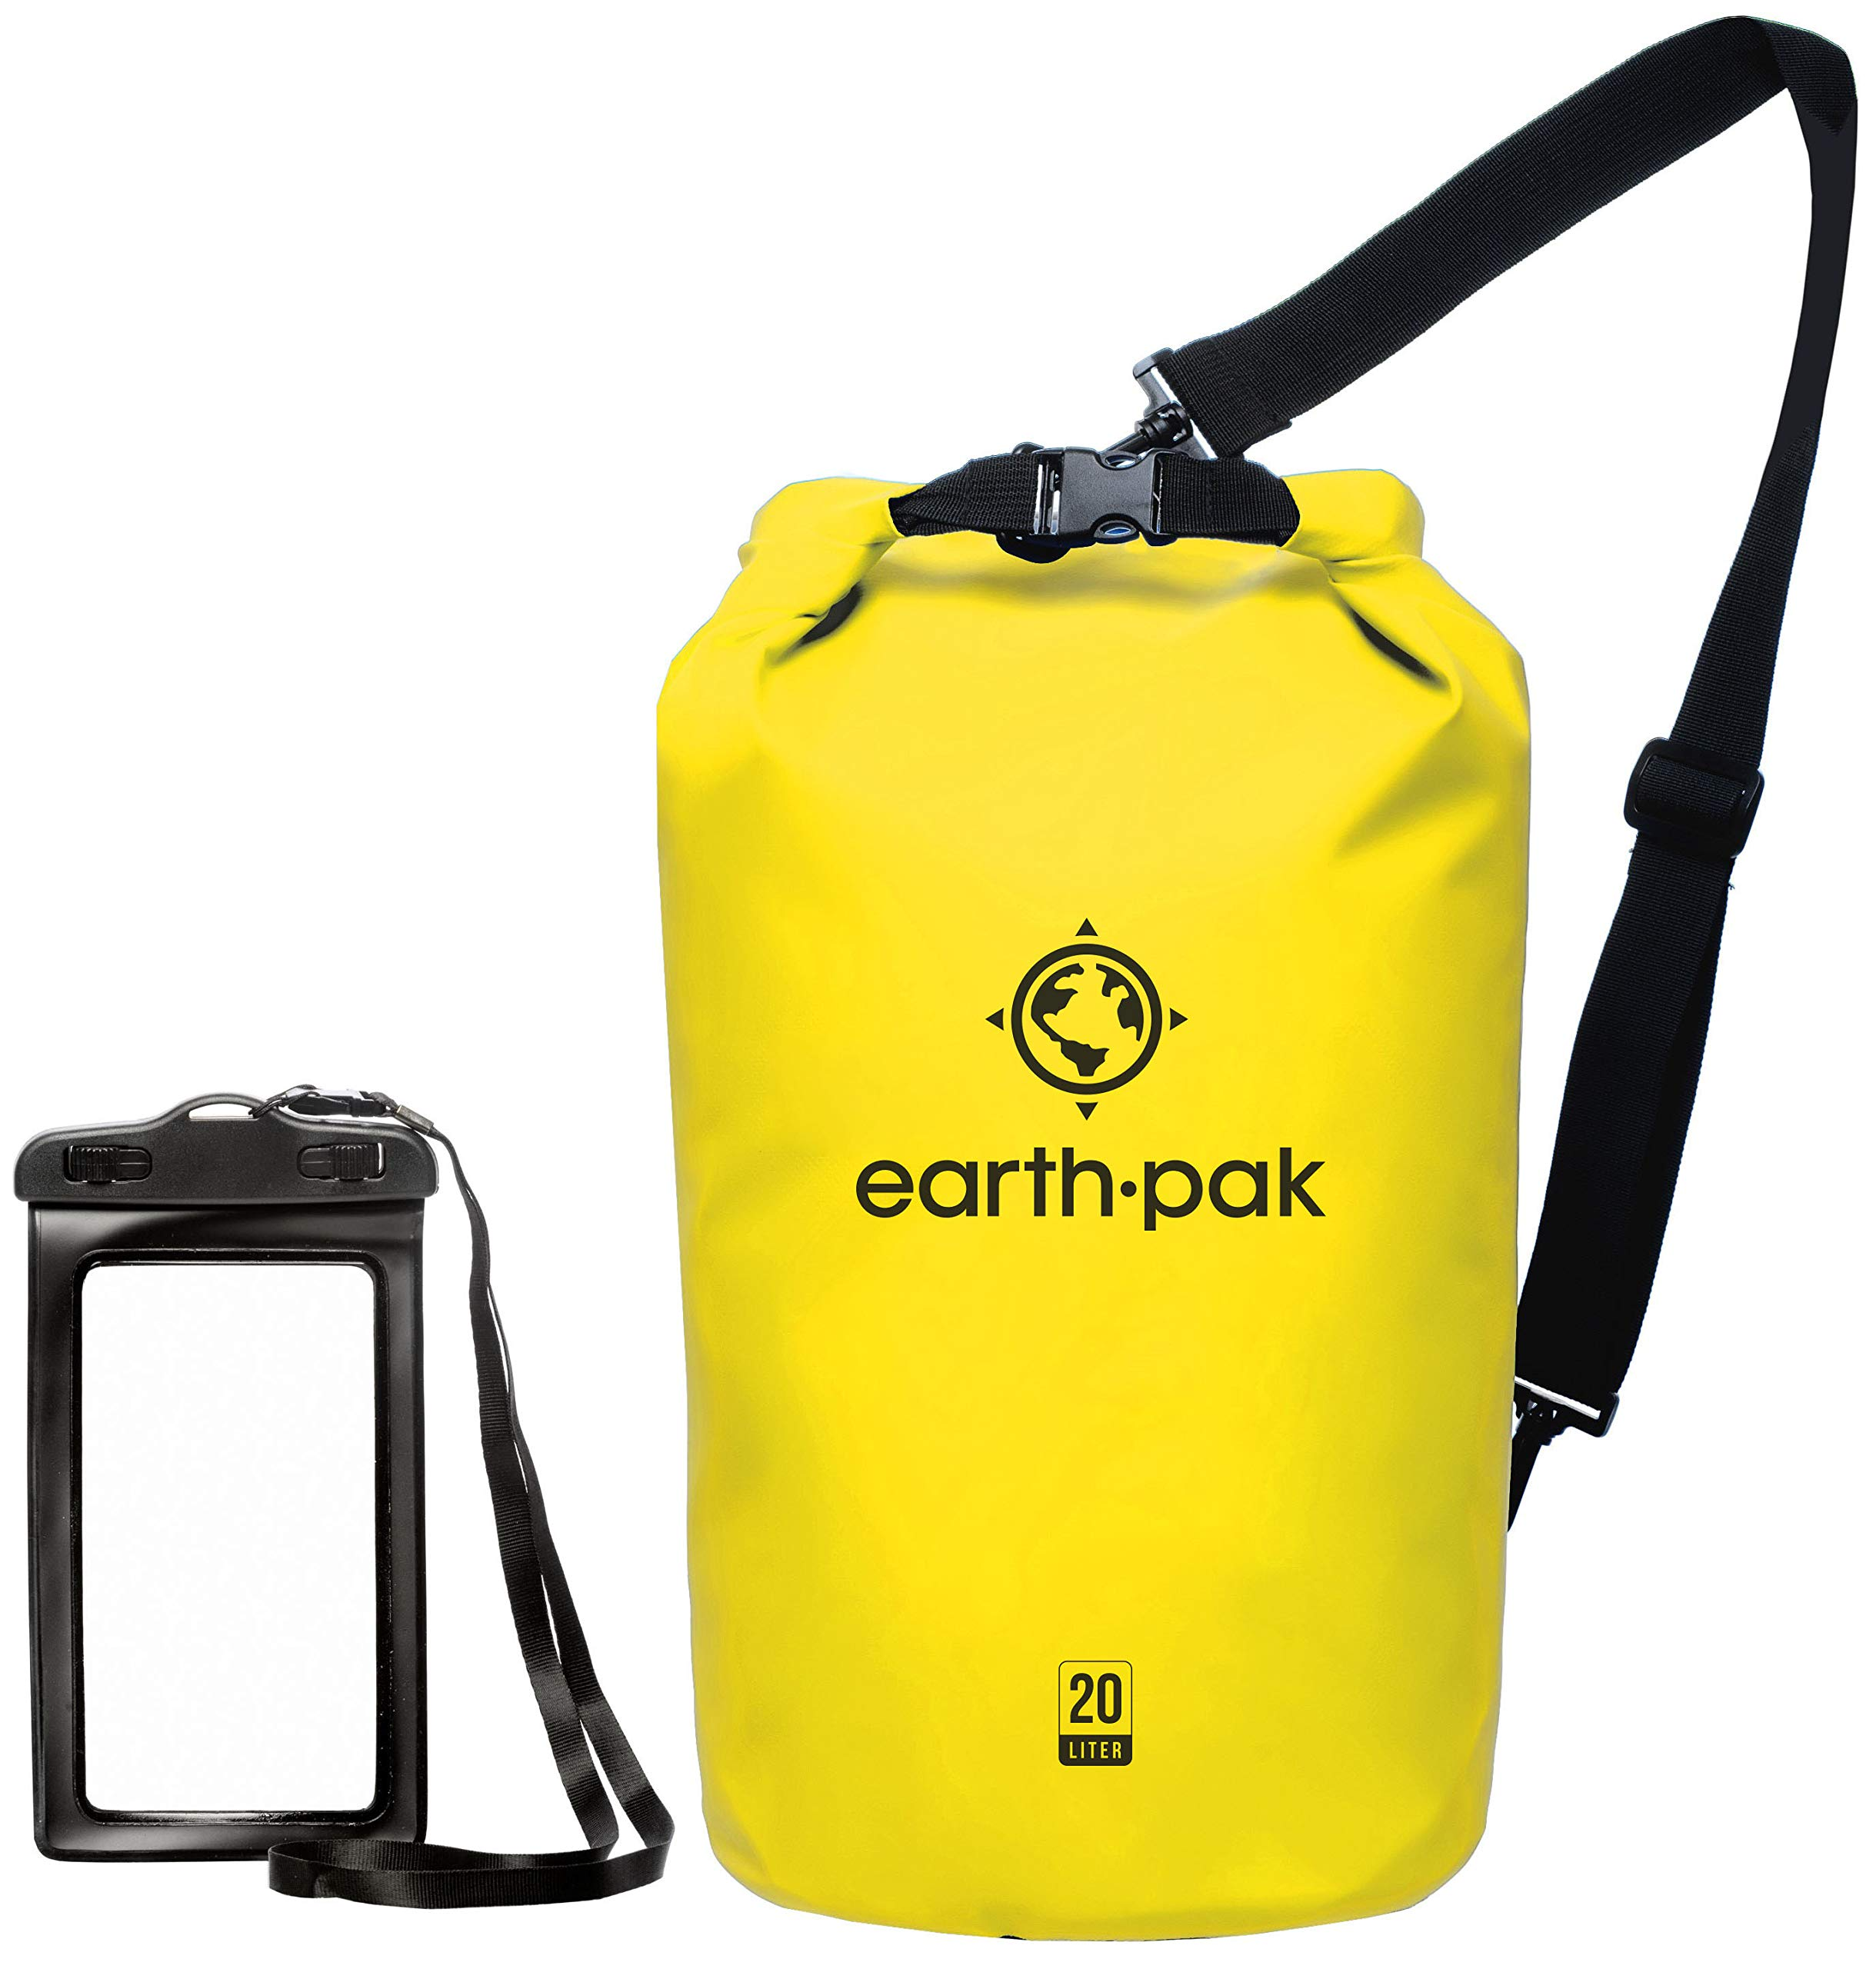 14000bd74f Earth Pak -Waterproof Dry Bag - Roll Top Dry Compression Sack Keeps Gear  Dry for Kayaking